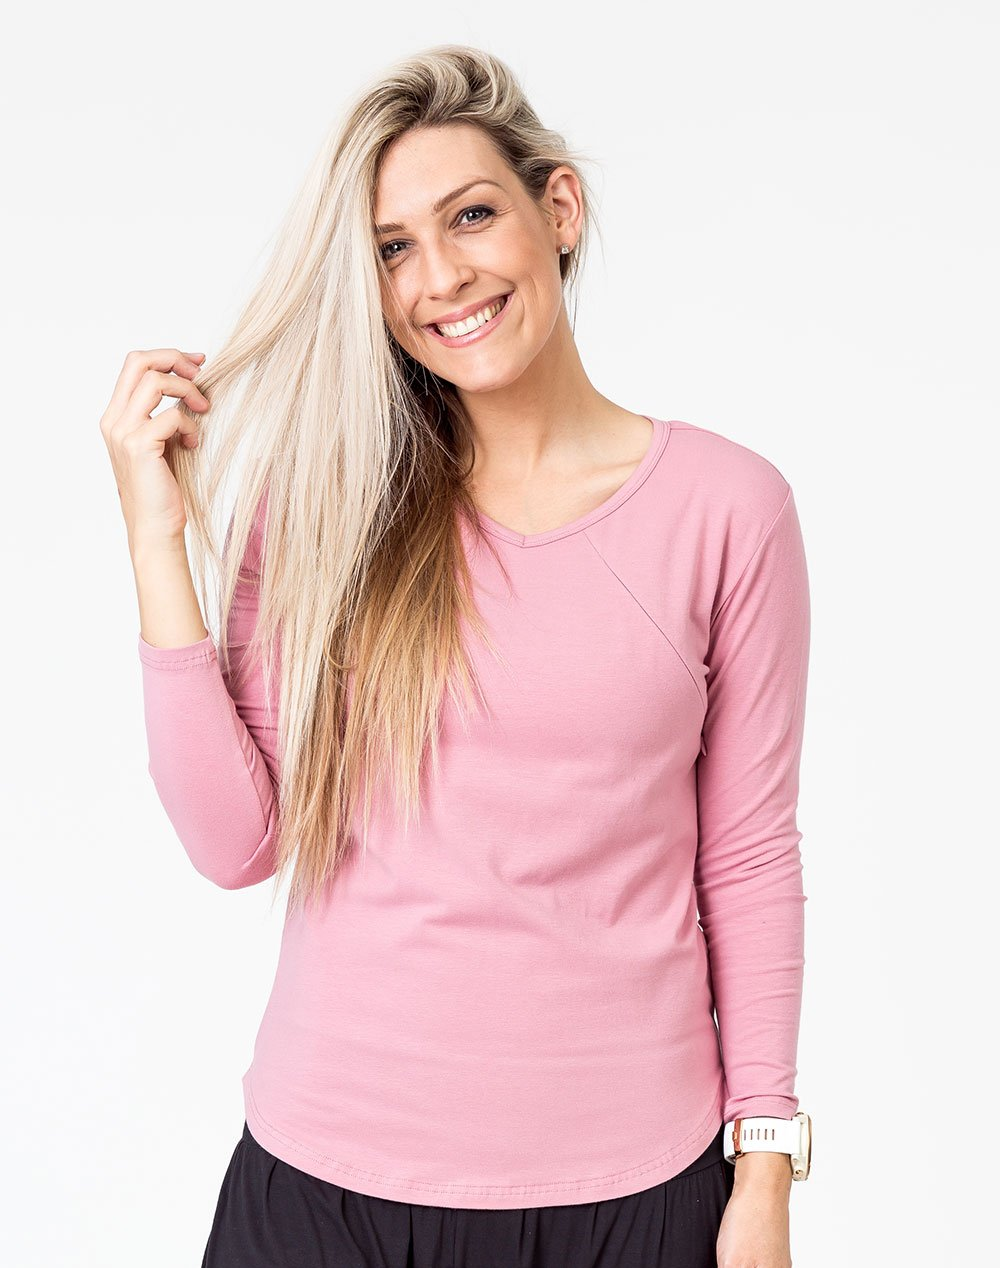 active mom wearing a pink maternity top with long sleeves and invisible zips for breastfeeding